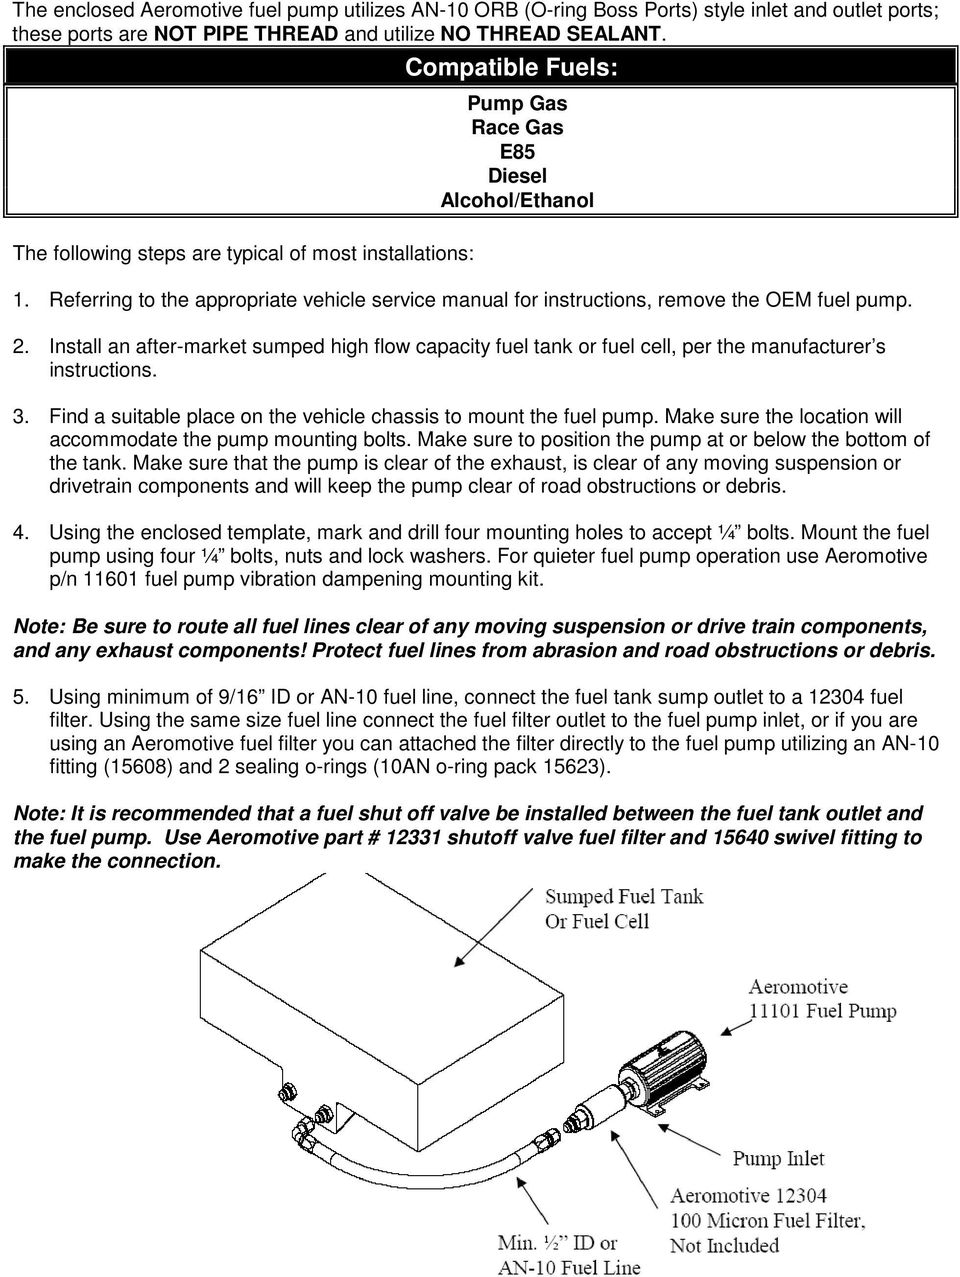 medium resolution of referring to the appropriate vehicle service manual for instructions remove the oem fuel pump